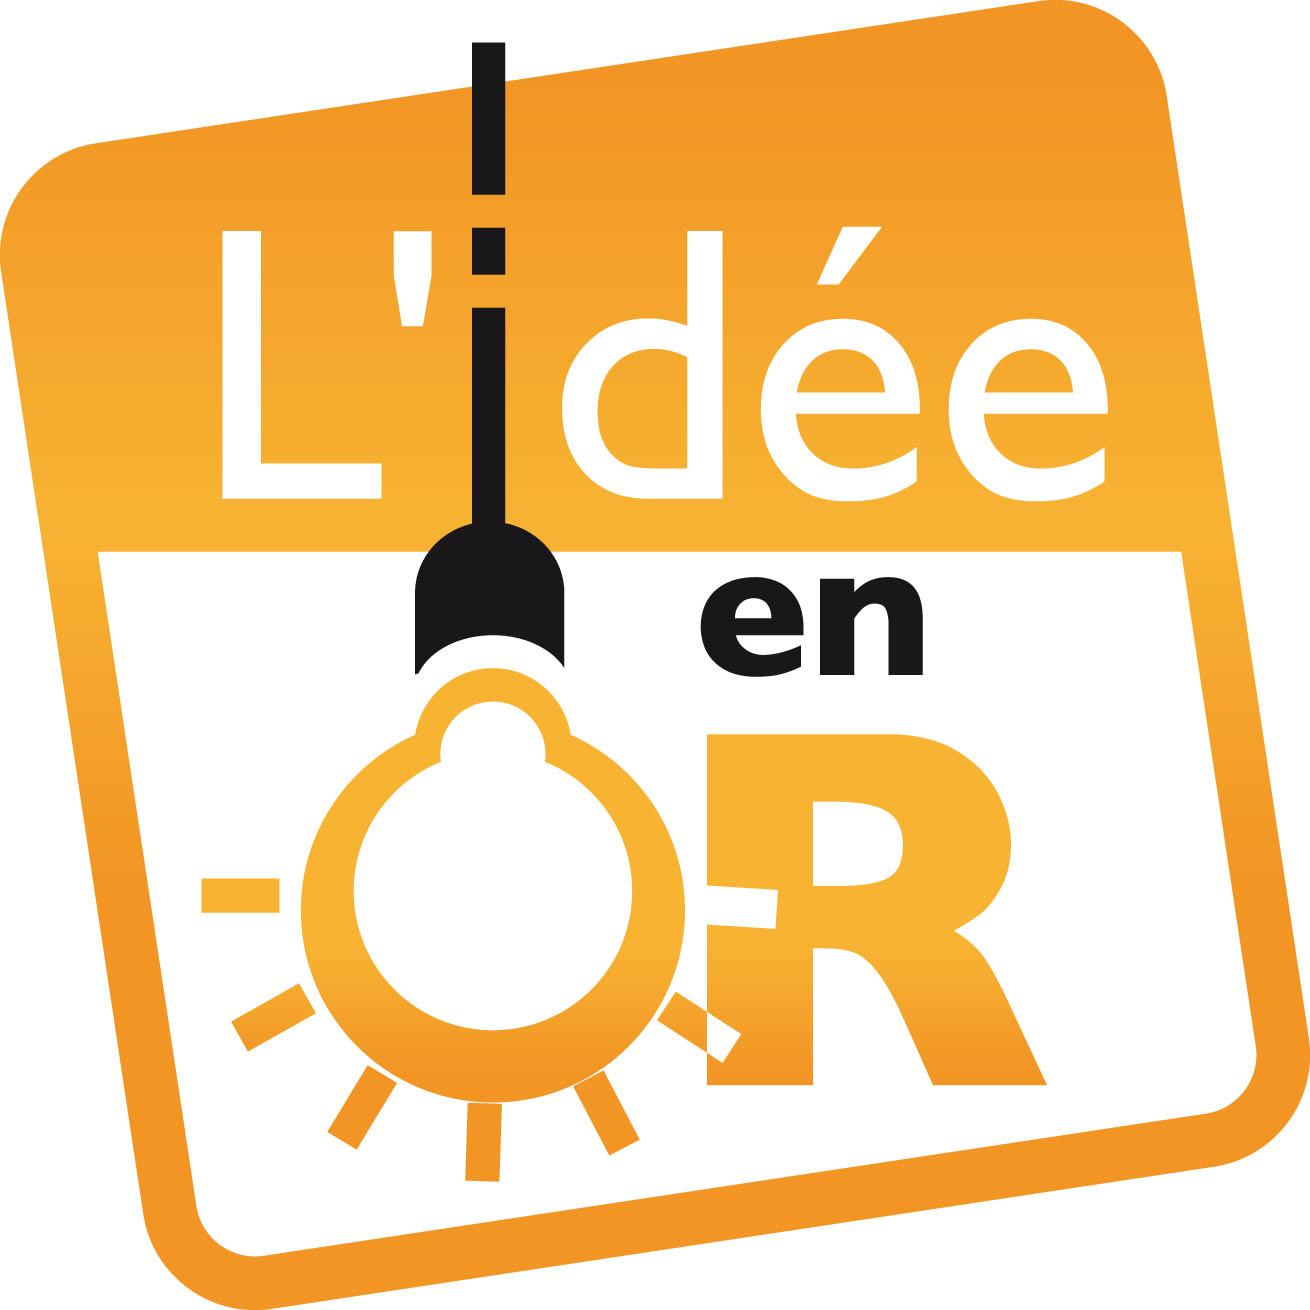 Comment trouver une bonne id e business 2 for Idee commerce rentable